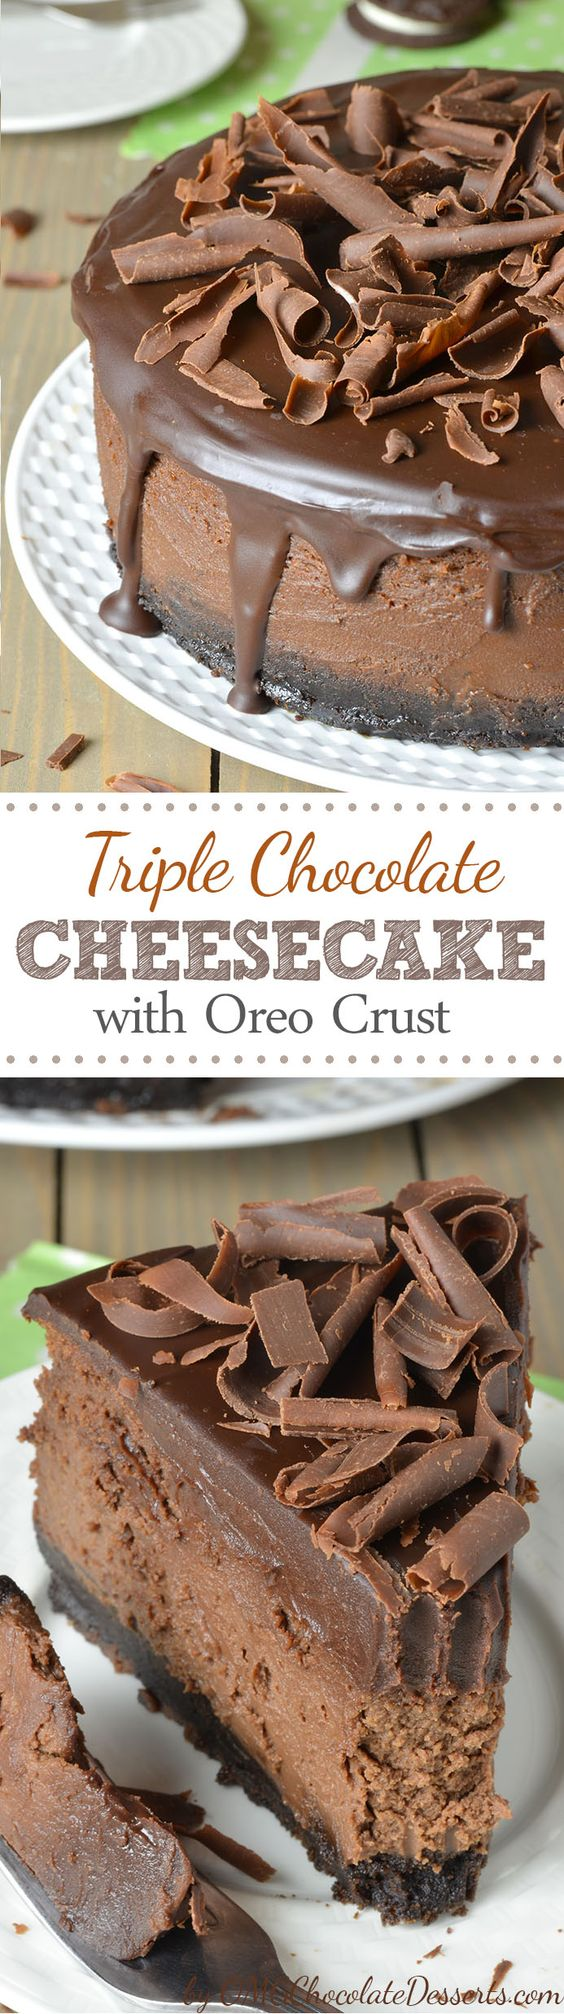 If you are a real chocoholic, love cheesecake and are an Oreo addict, then there is only one solution for you, the decadent Triple Chocolate Cheesecake with Oreo Crust!